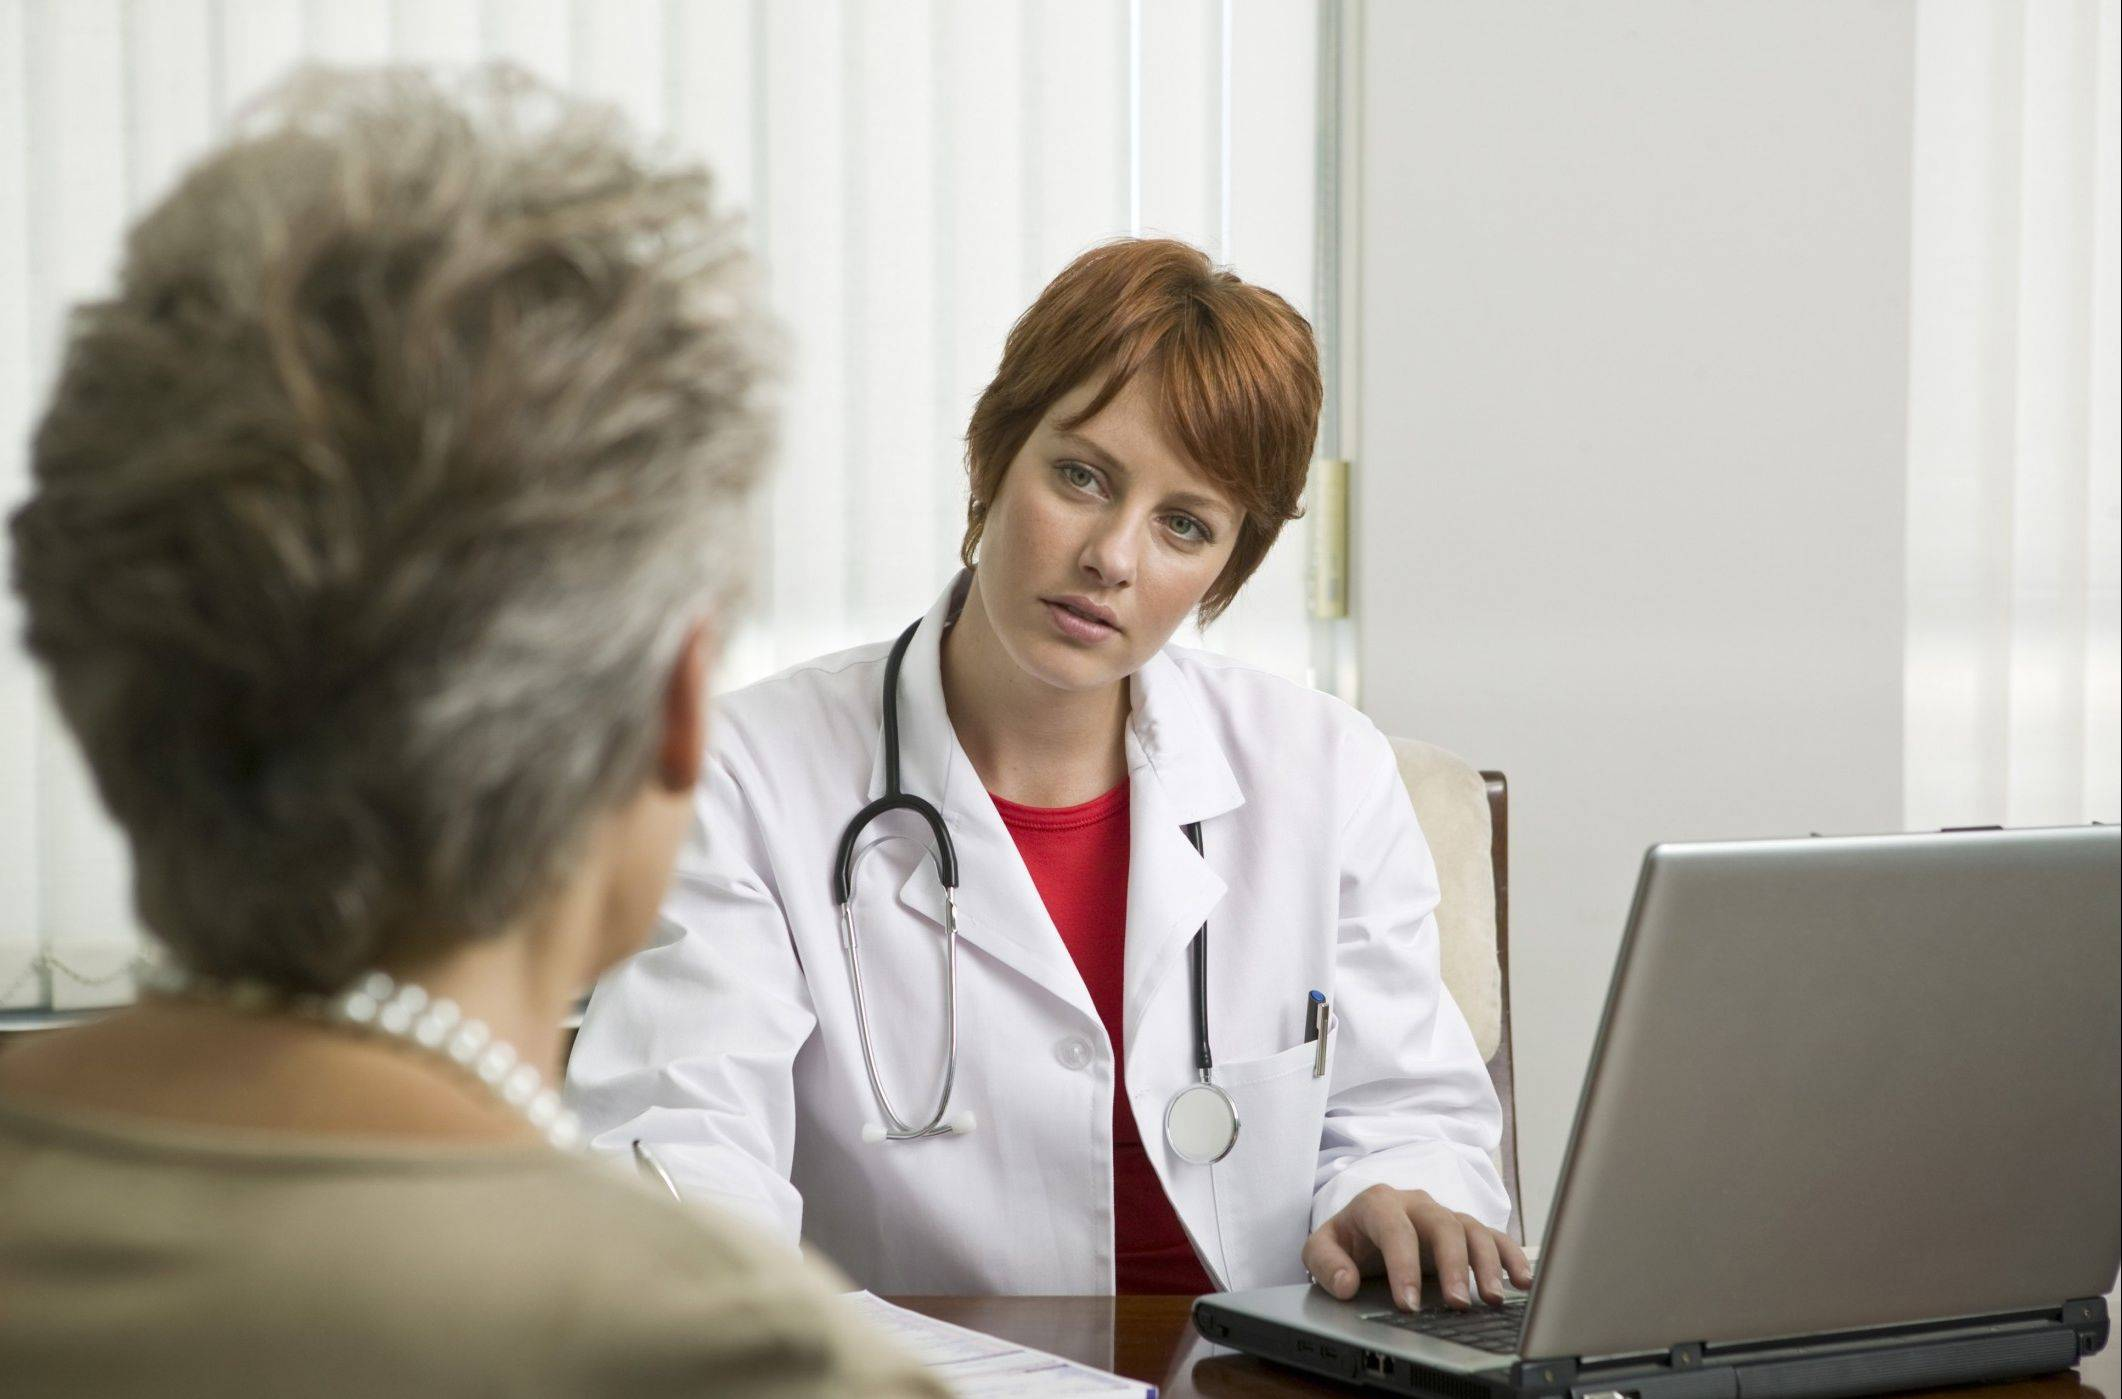 Patients should have knowledge of their medical histories when seeing a doctor.